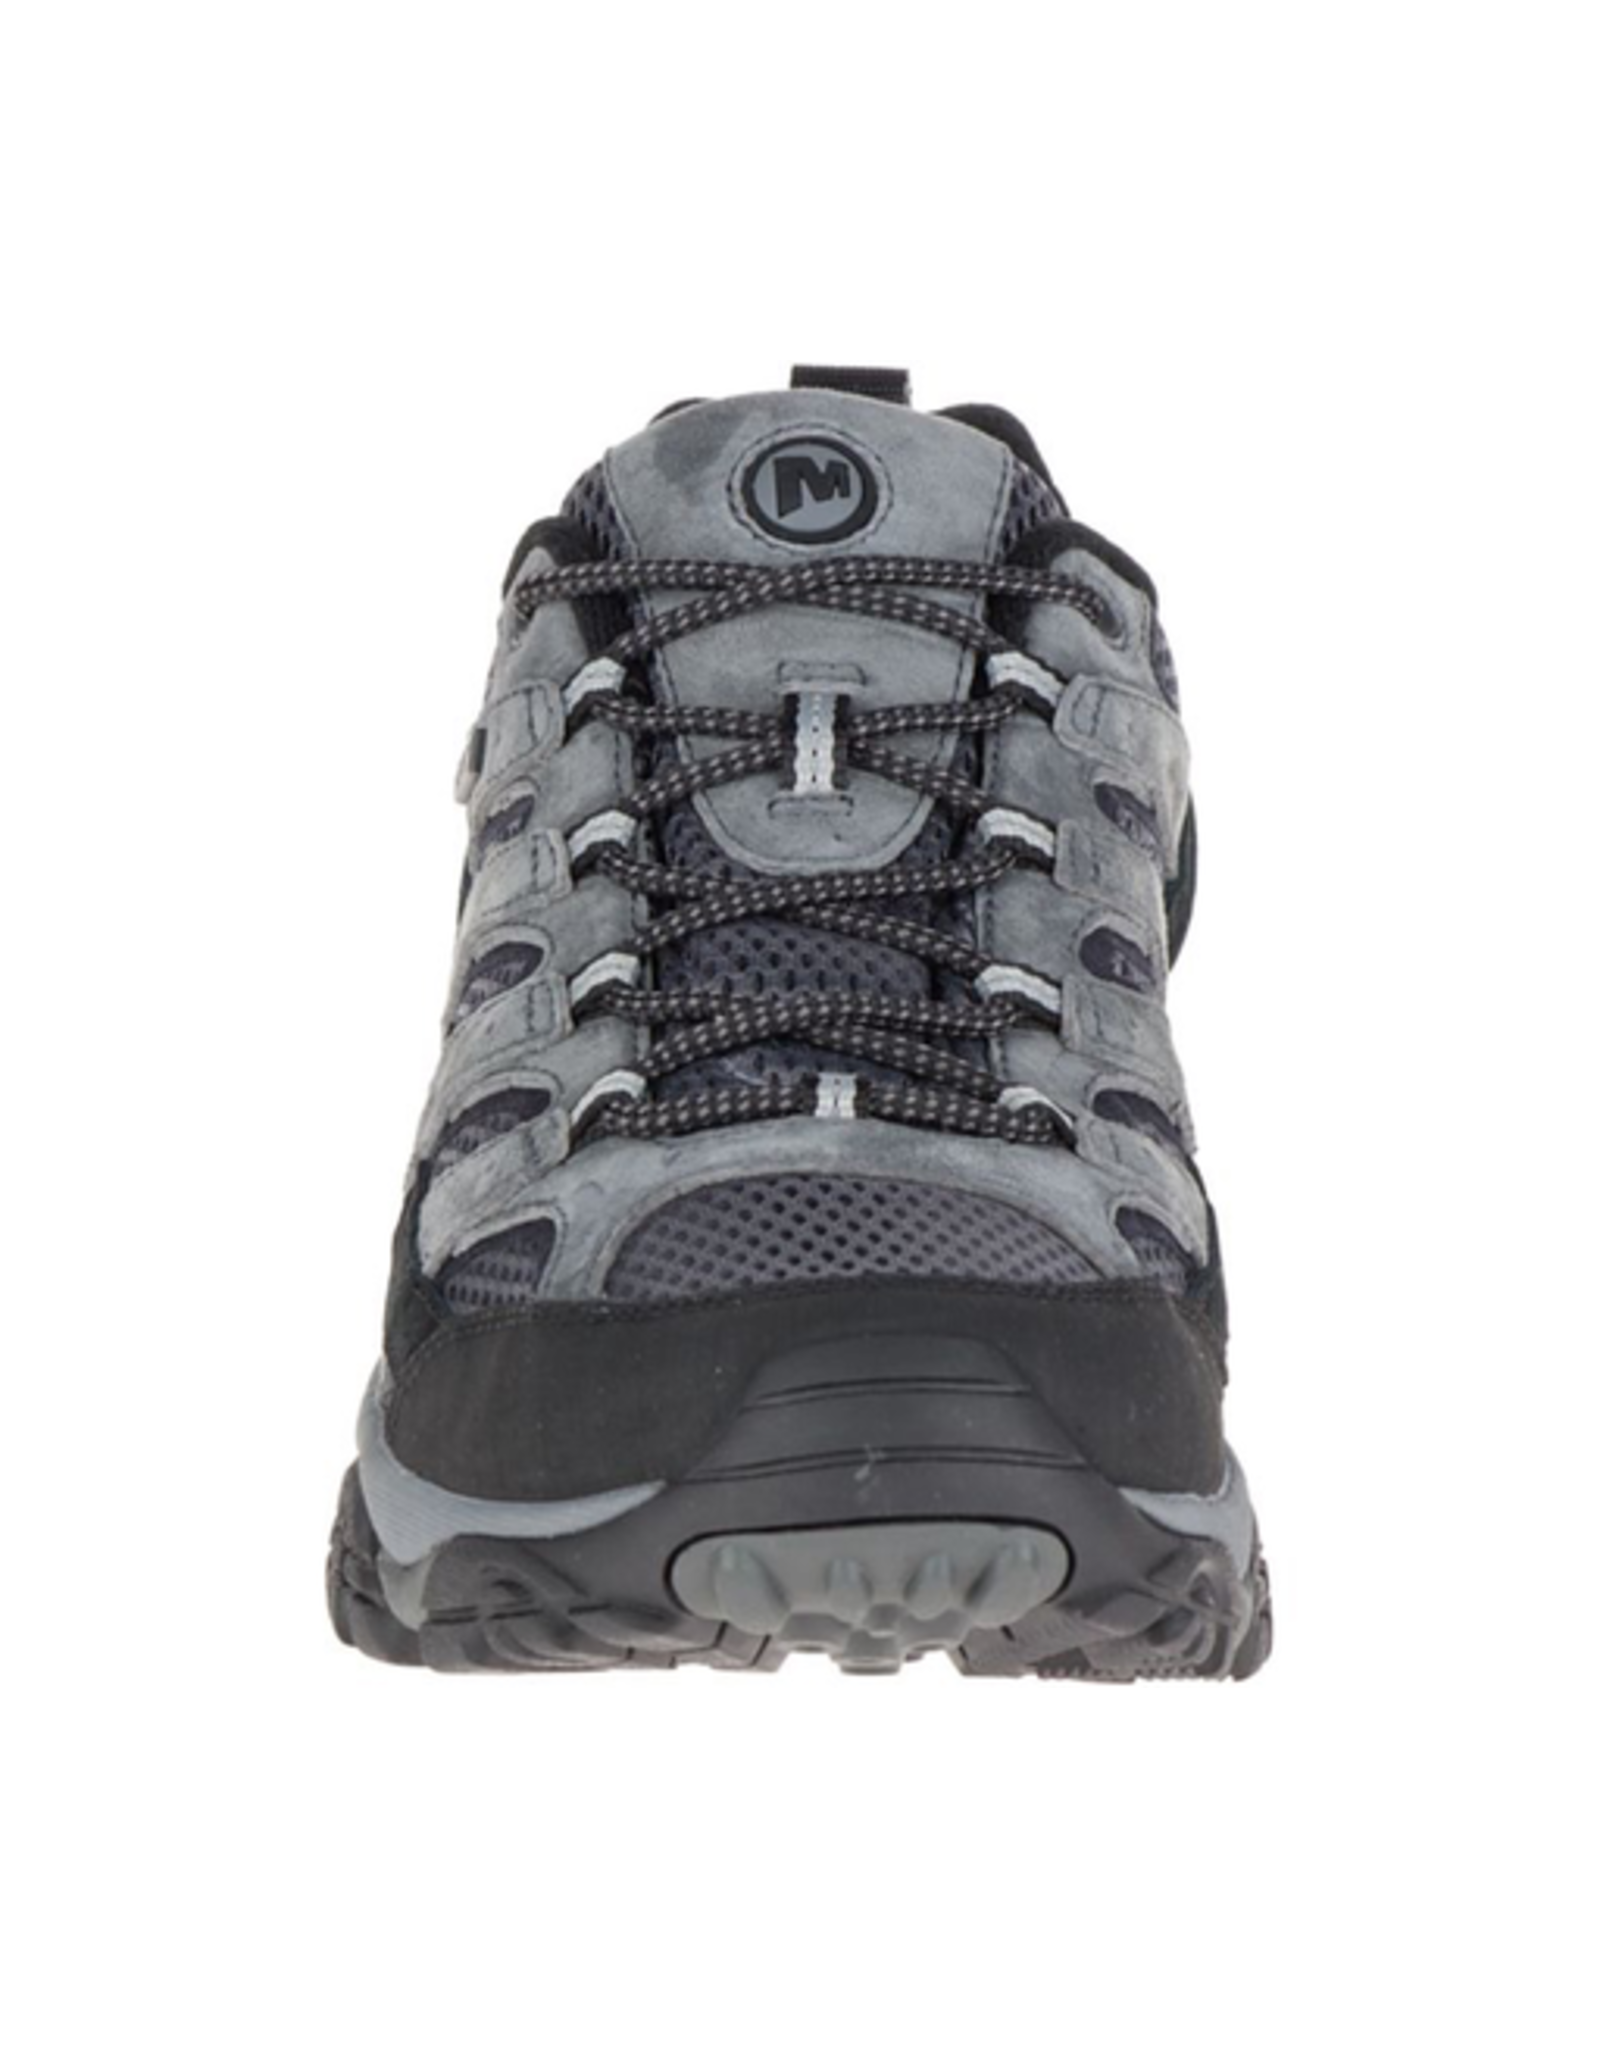 Merrell Merrell Men's Moab 2 Waterproof Hking Shoes